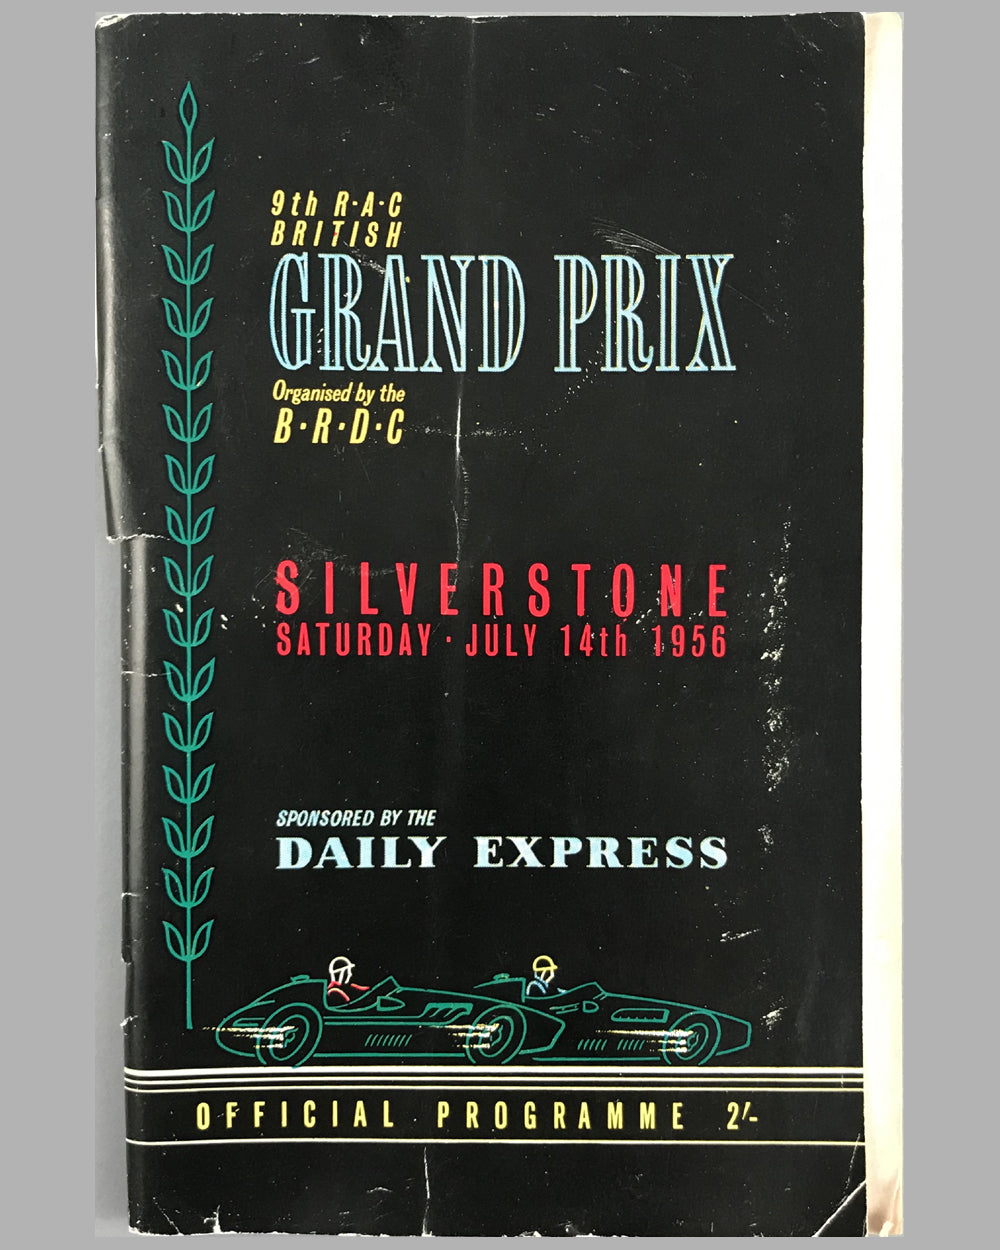 1956 Grand Prix of Silverstone Formula 1 Championship Race Program